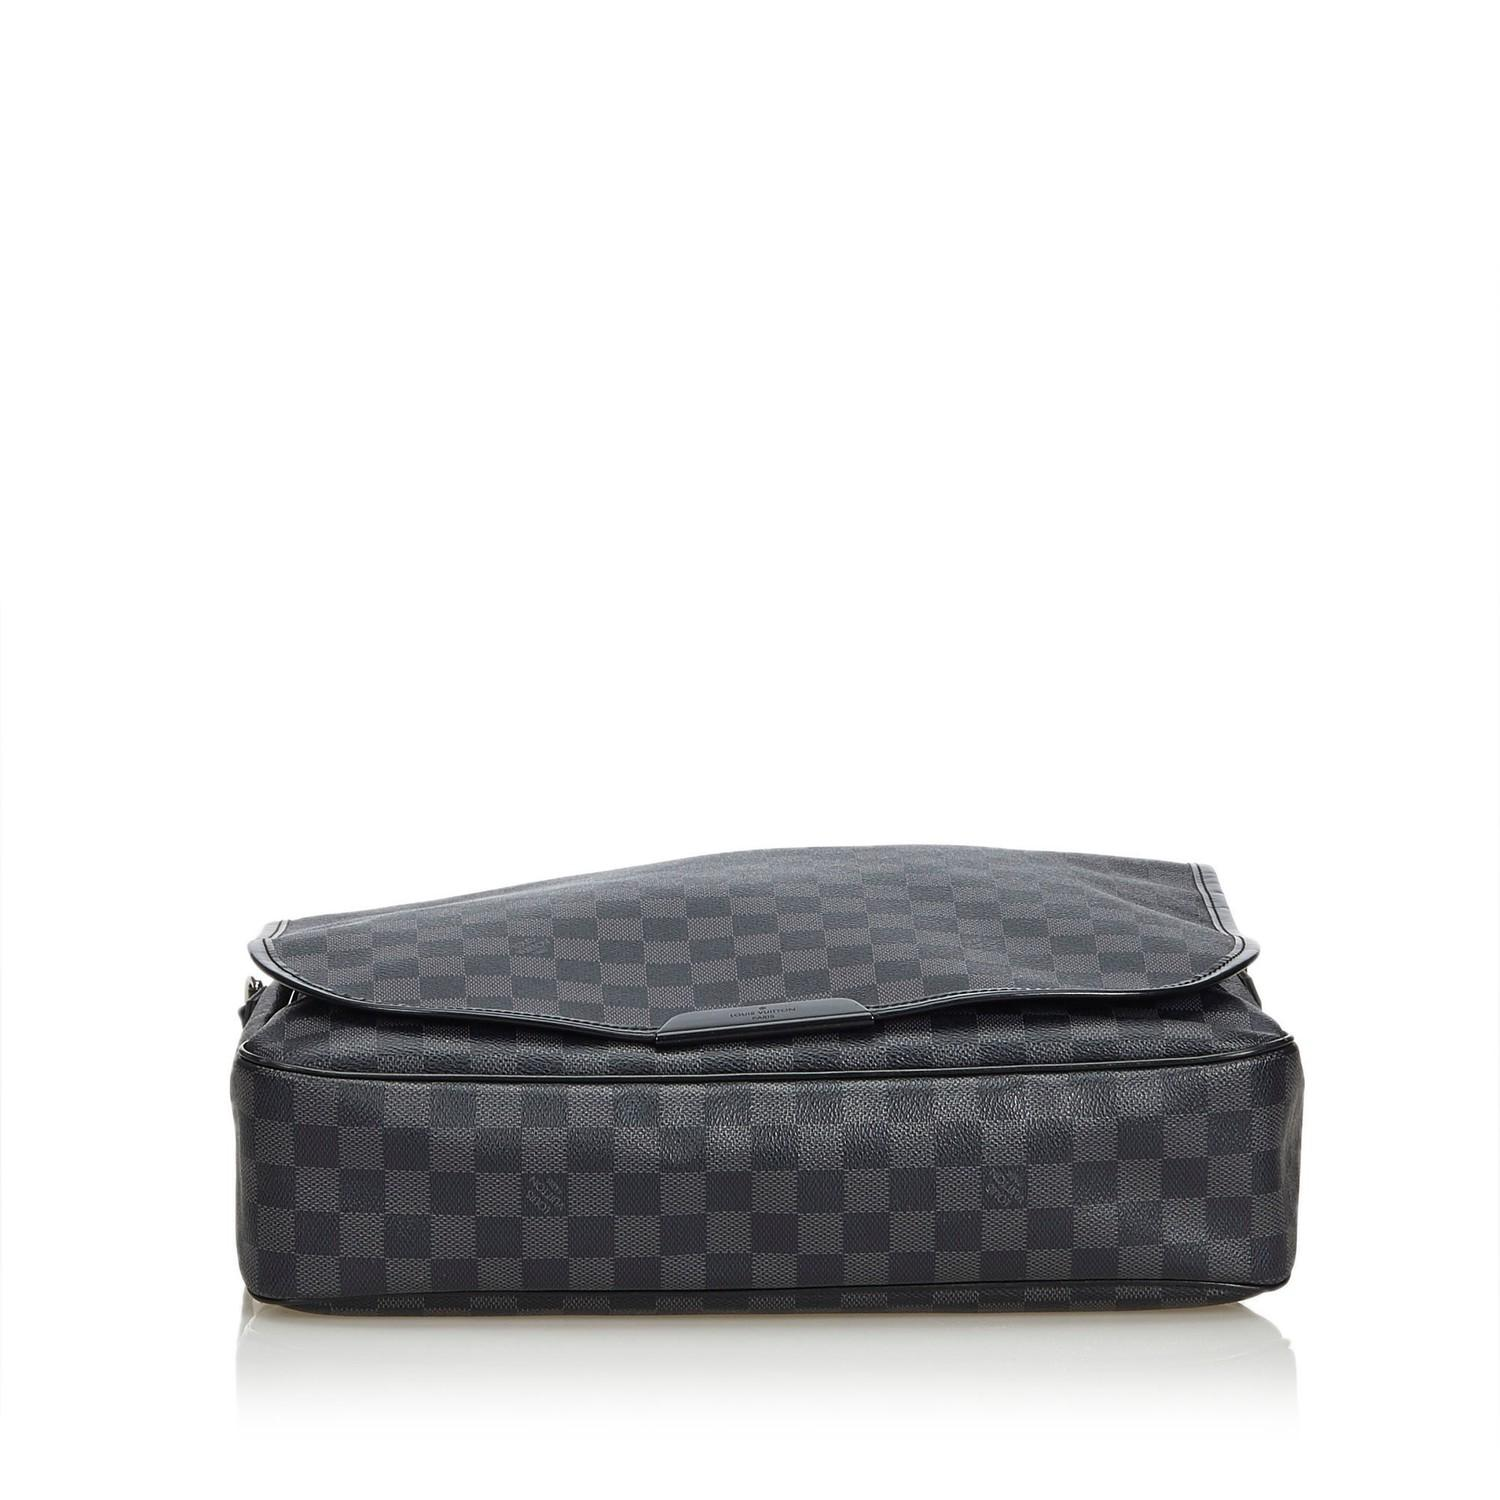 A Louis Vuitton Daniel Messenger Bag Damier Graphite is very resistant to water and scratches, and - Image 4 of 9